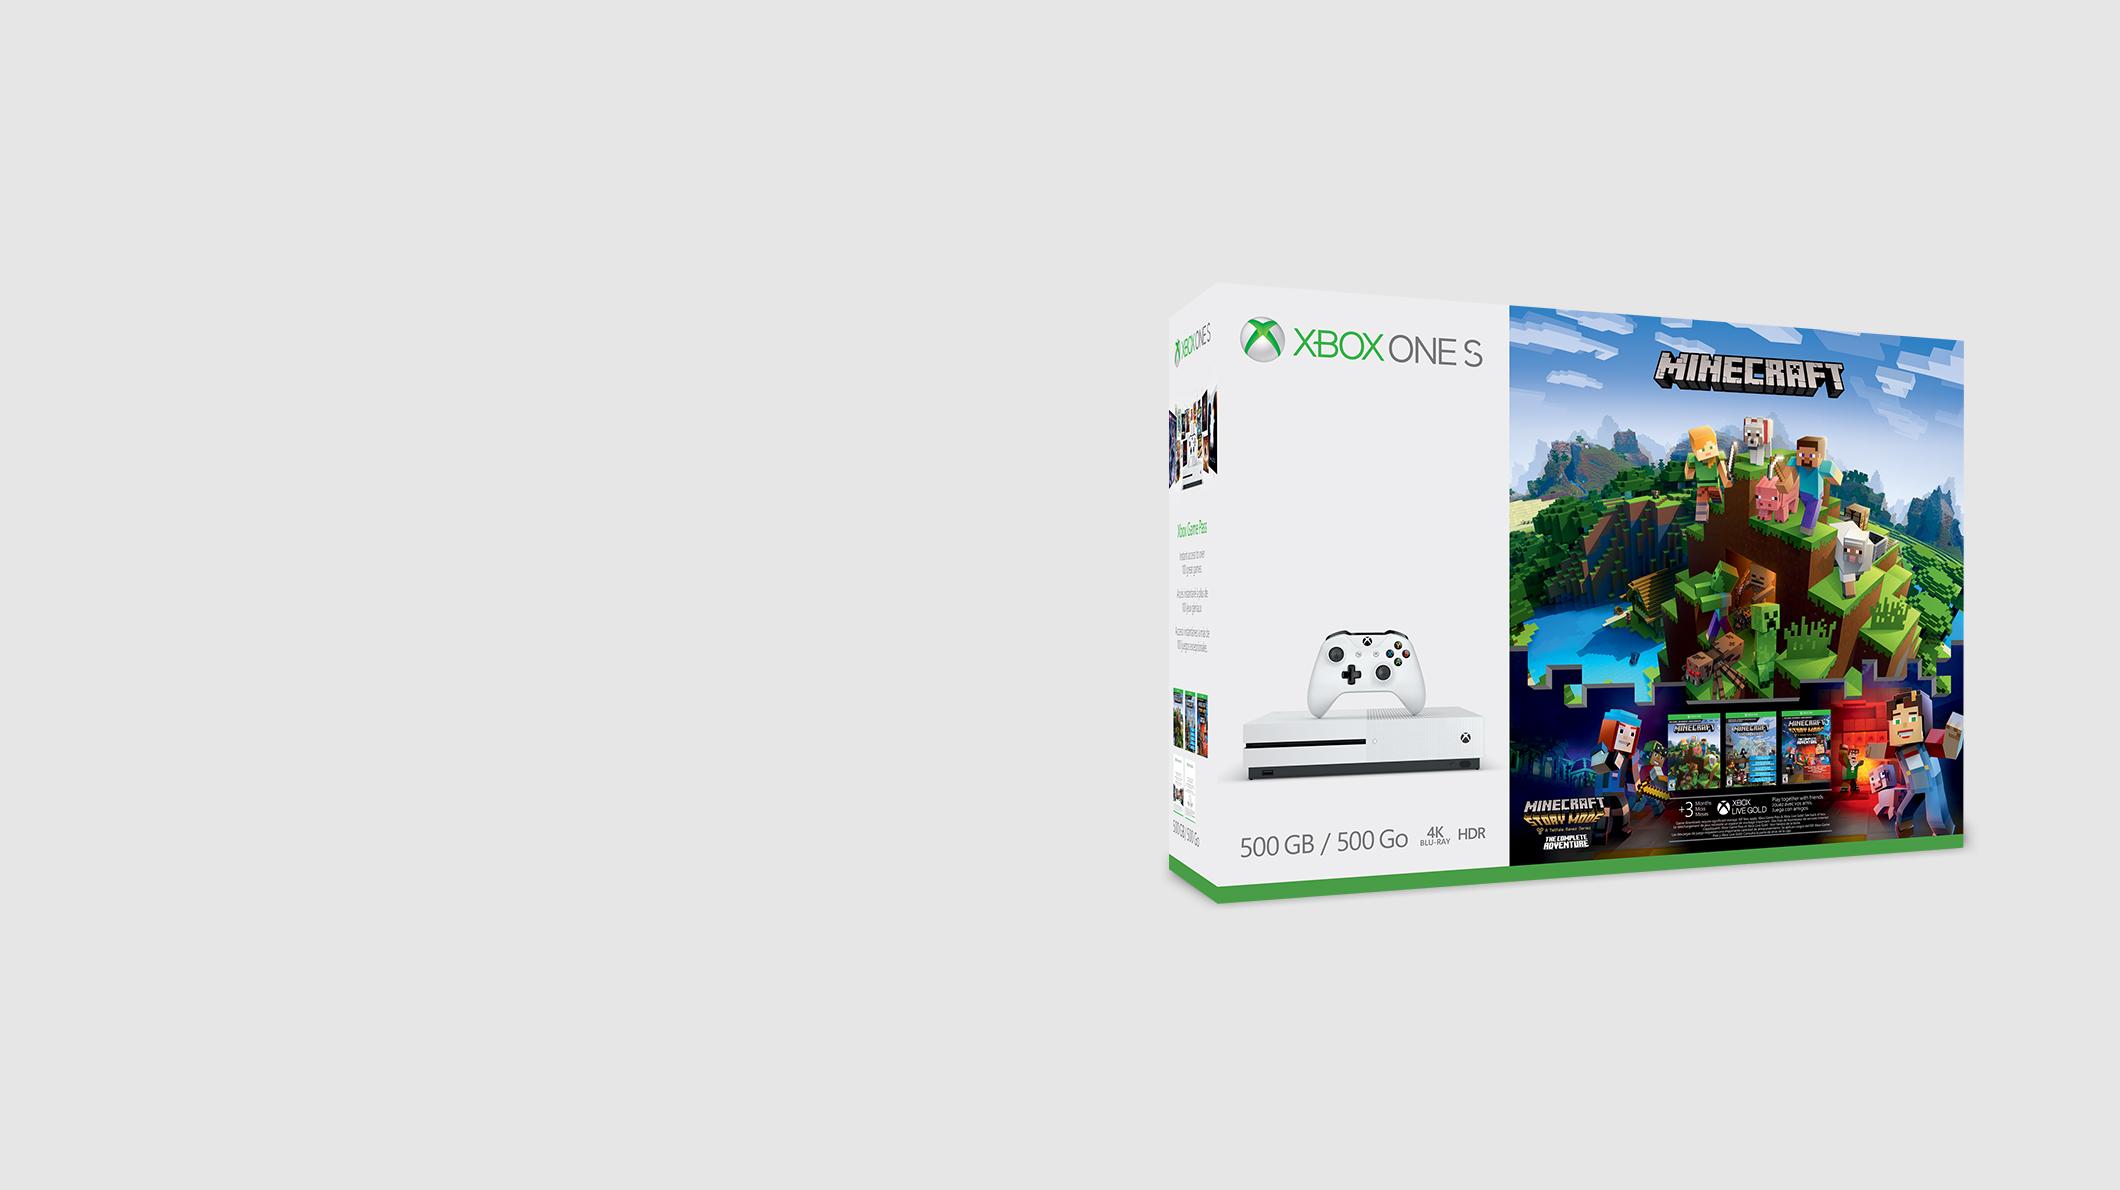 An Xbox One S Minecraft bundle